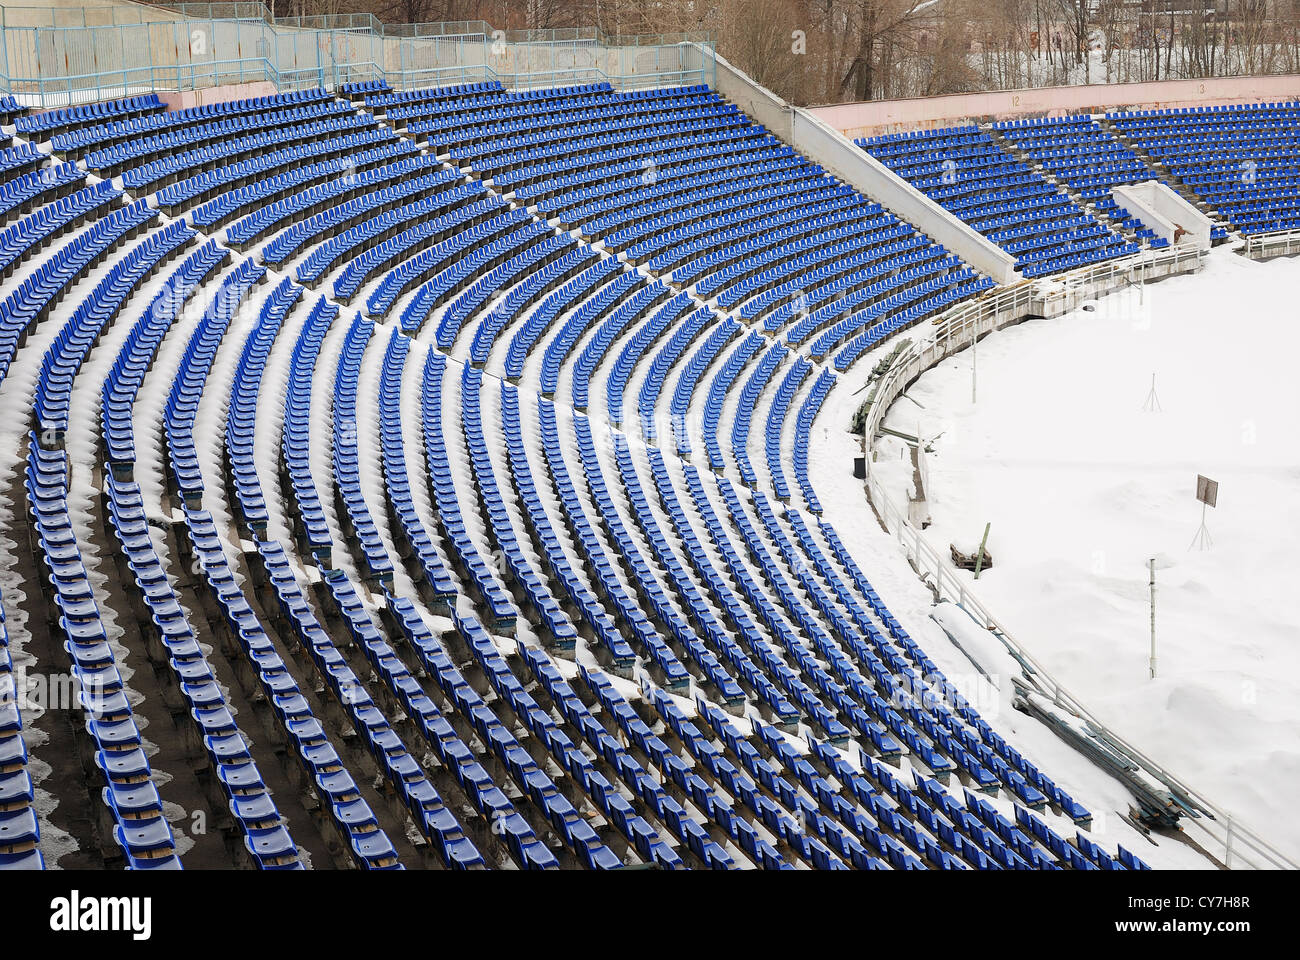 part of a snow-covered stadium, football ground in winter - Stock Image